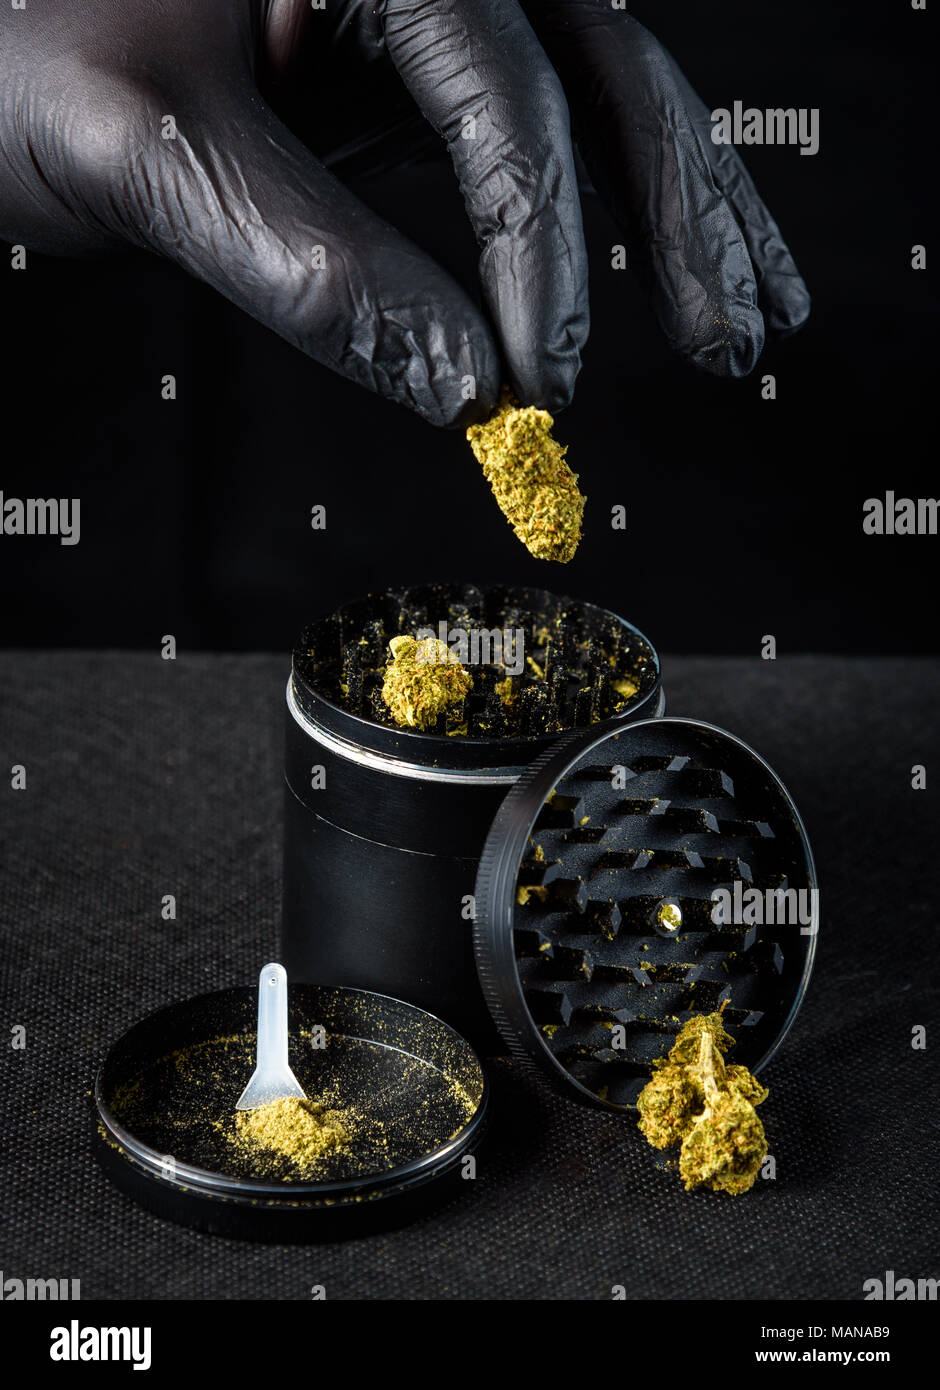 A medicinal marijuana grinder with keef and scraper. a hand with a black latex glove holding a fresh nug. Black background Stock Photo